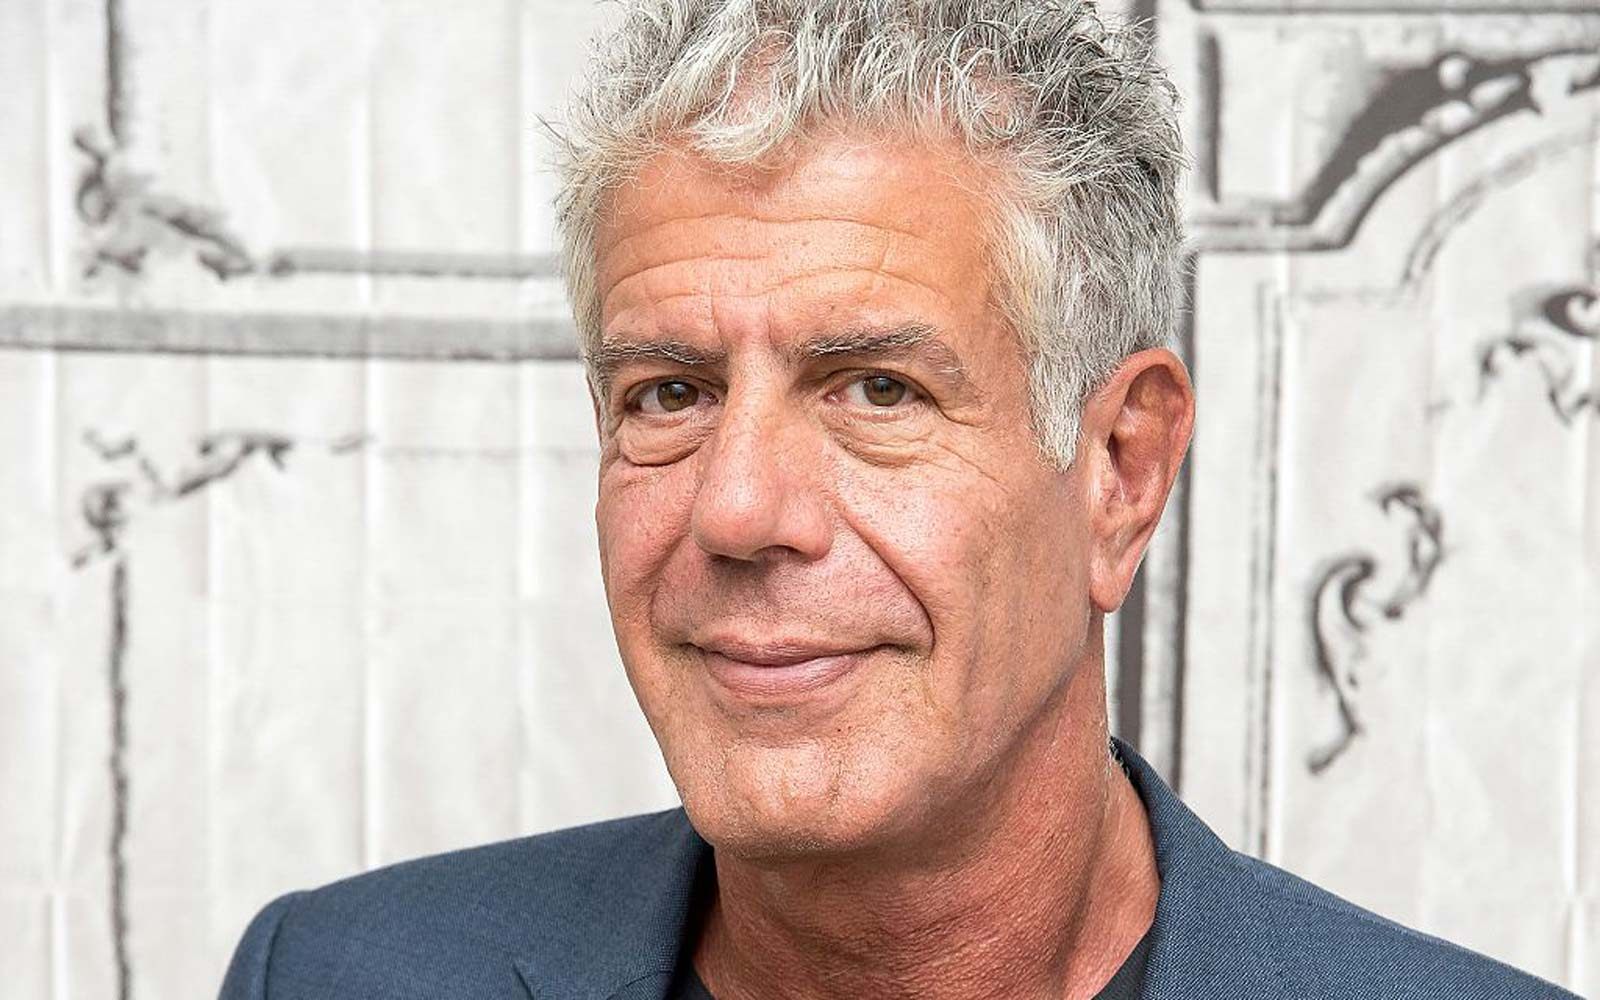 Anthony Bourdain Memorial Book to Be Released in May